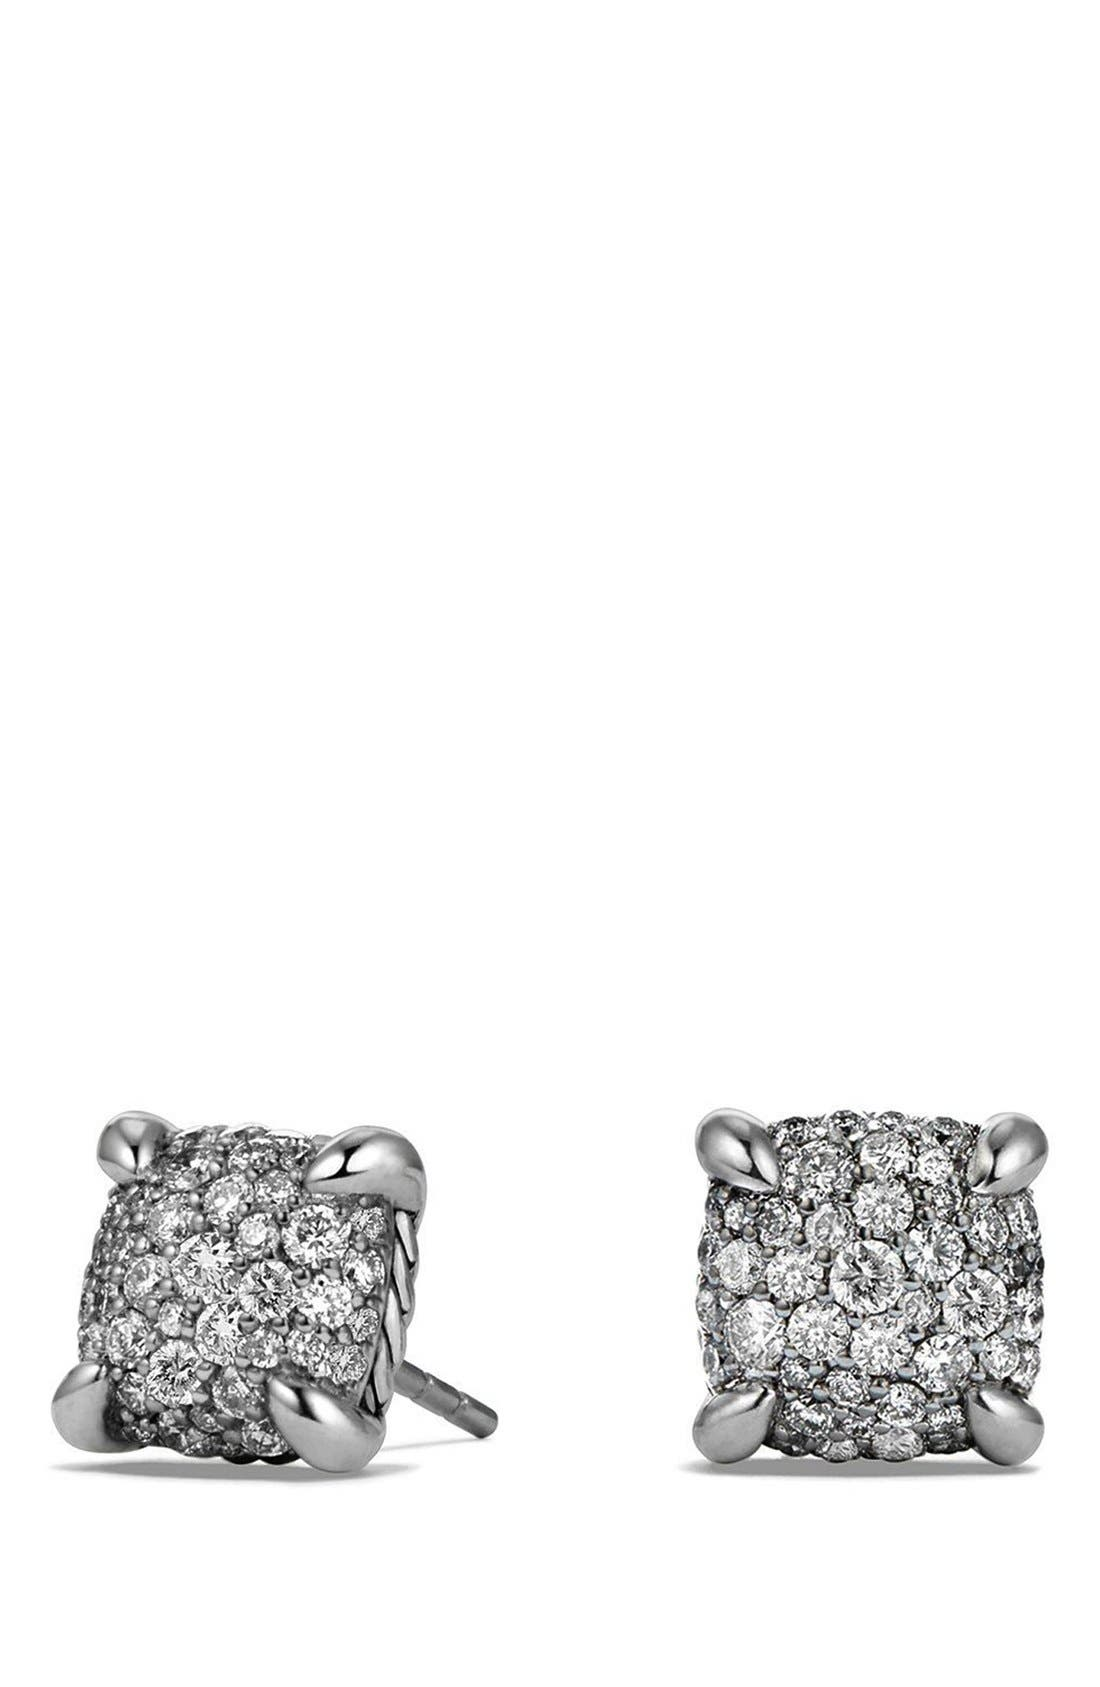 'Châtelaine' Earrings with Diamonds,                             Main thumbnail 1, color,                             Silver